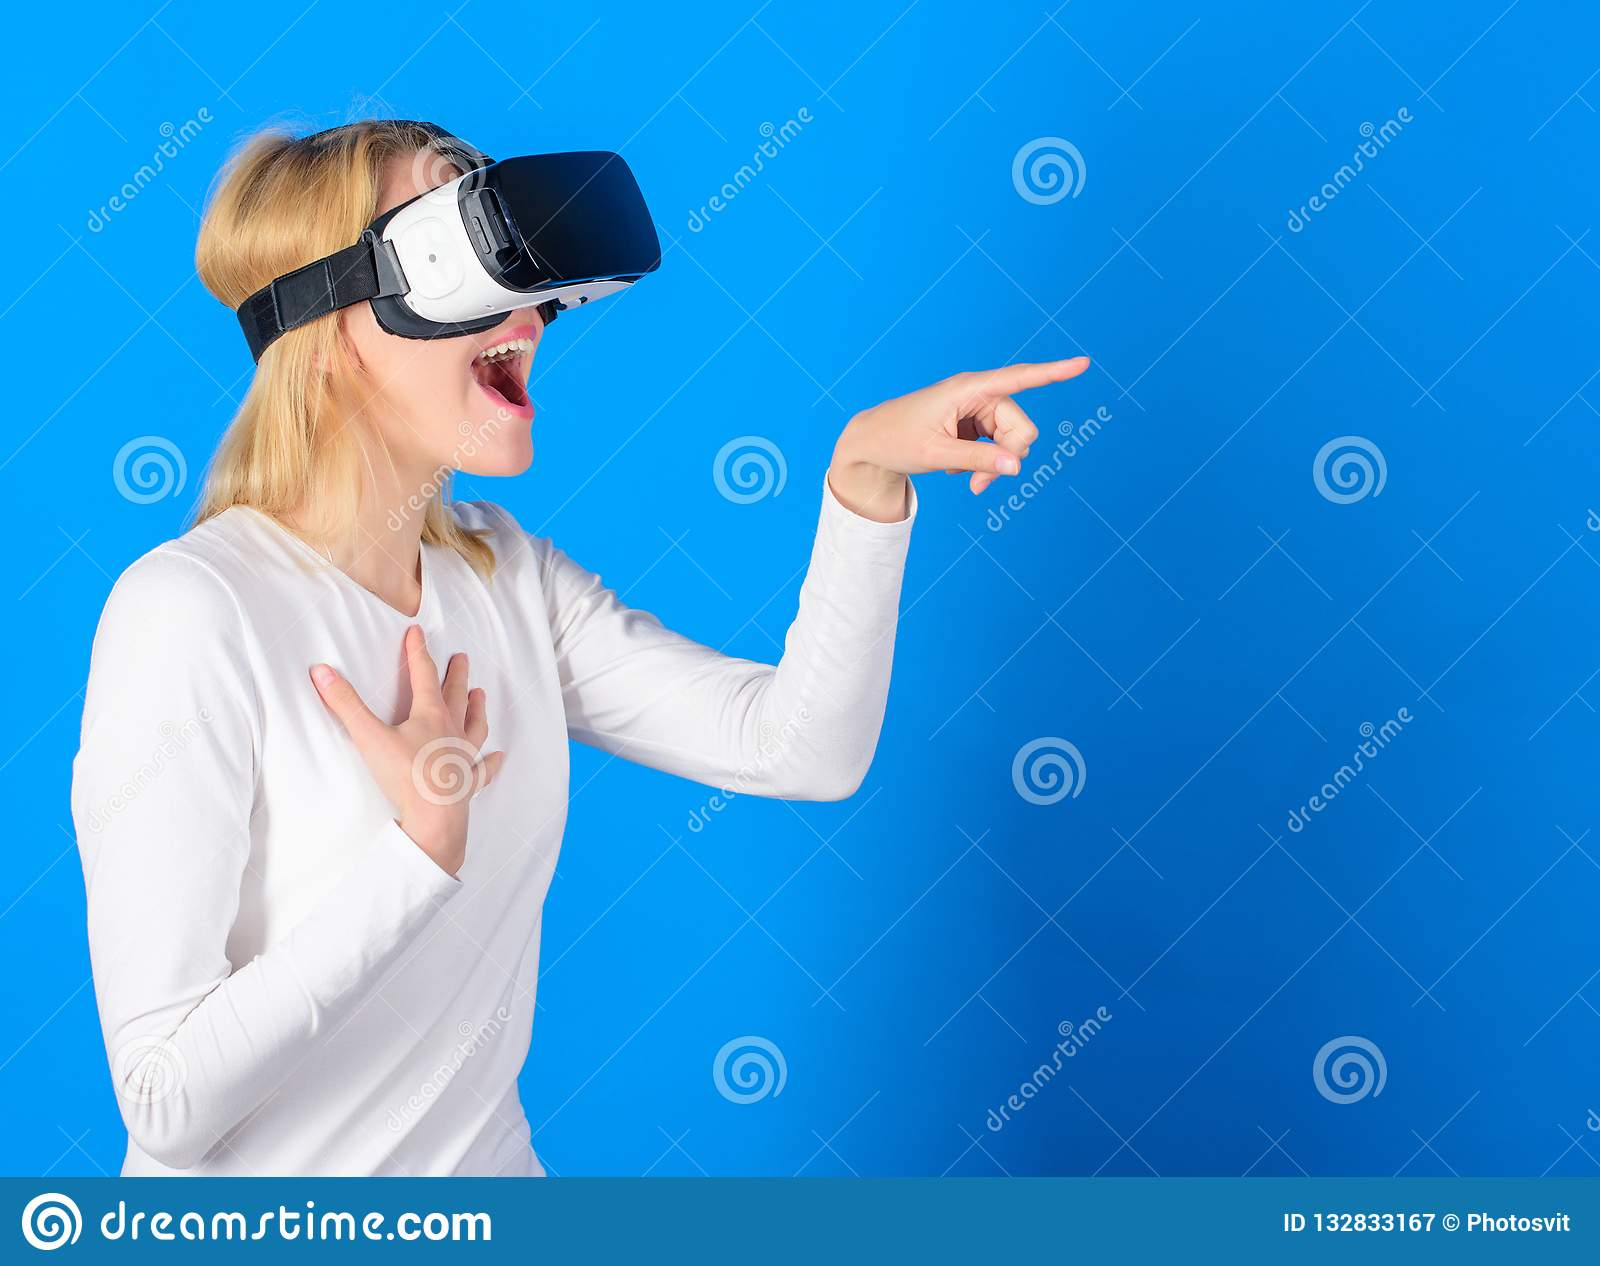 Funny woman experiencing 3D gadget technology - close up. Excited smiling businesswoman wearing virtual reality glasses